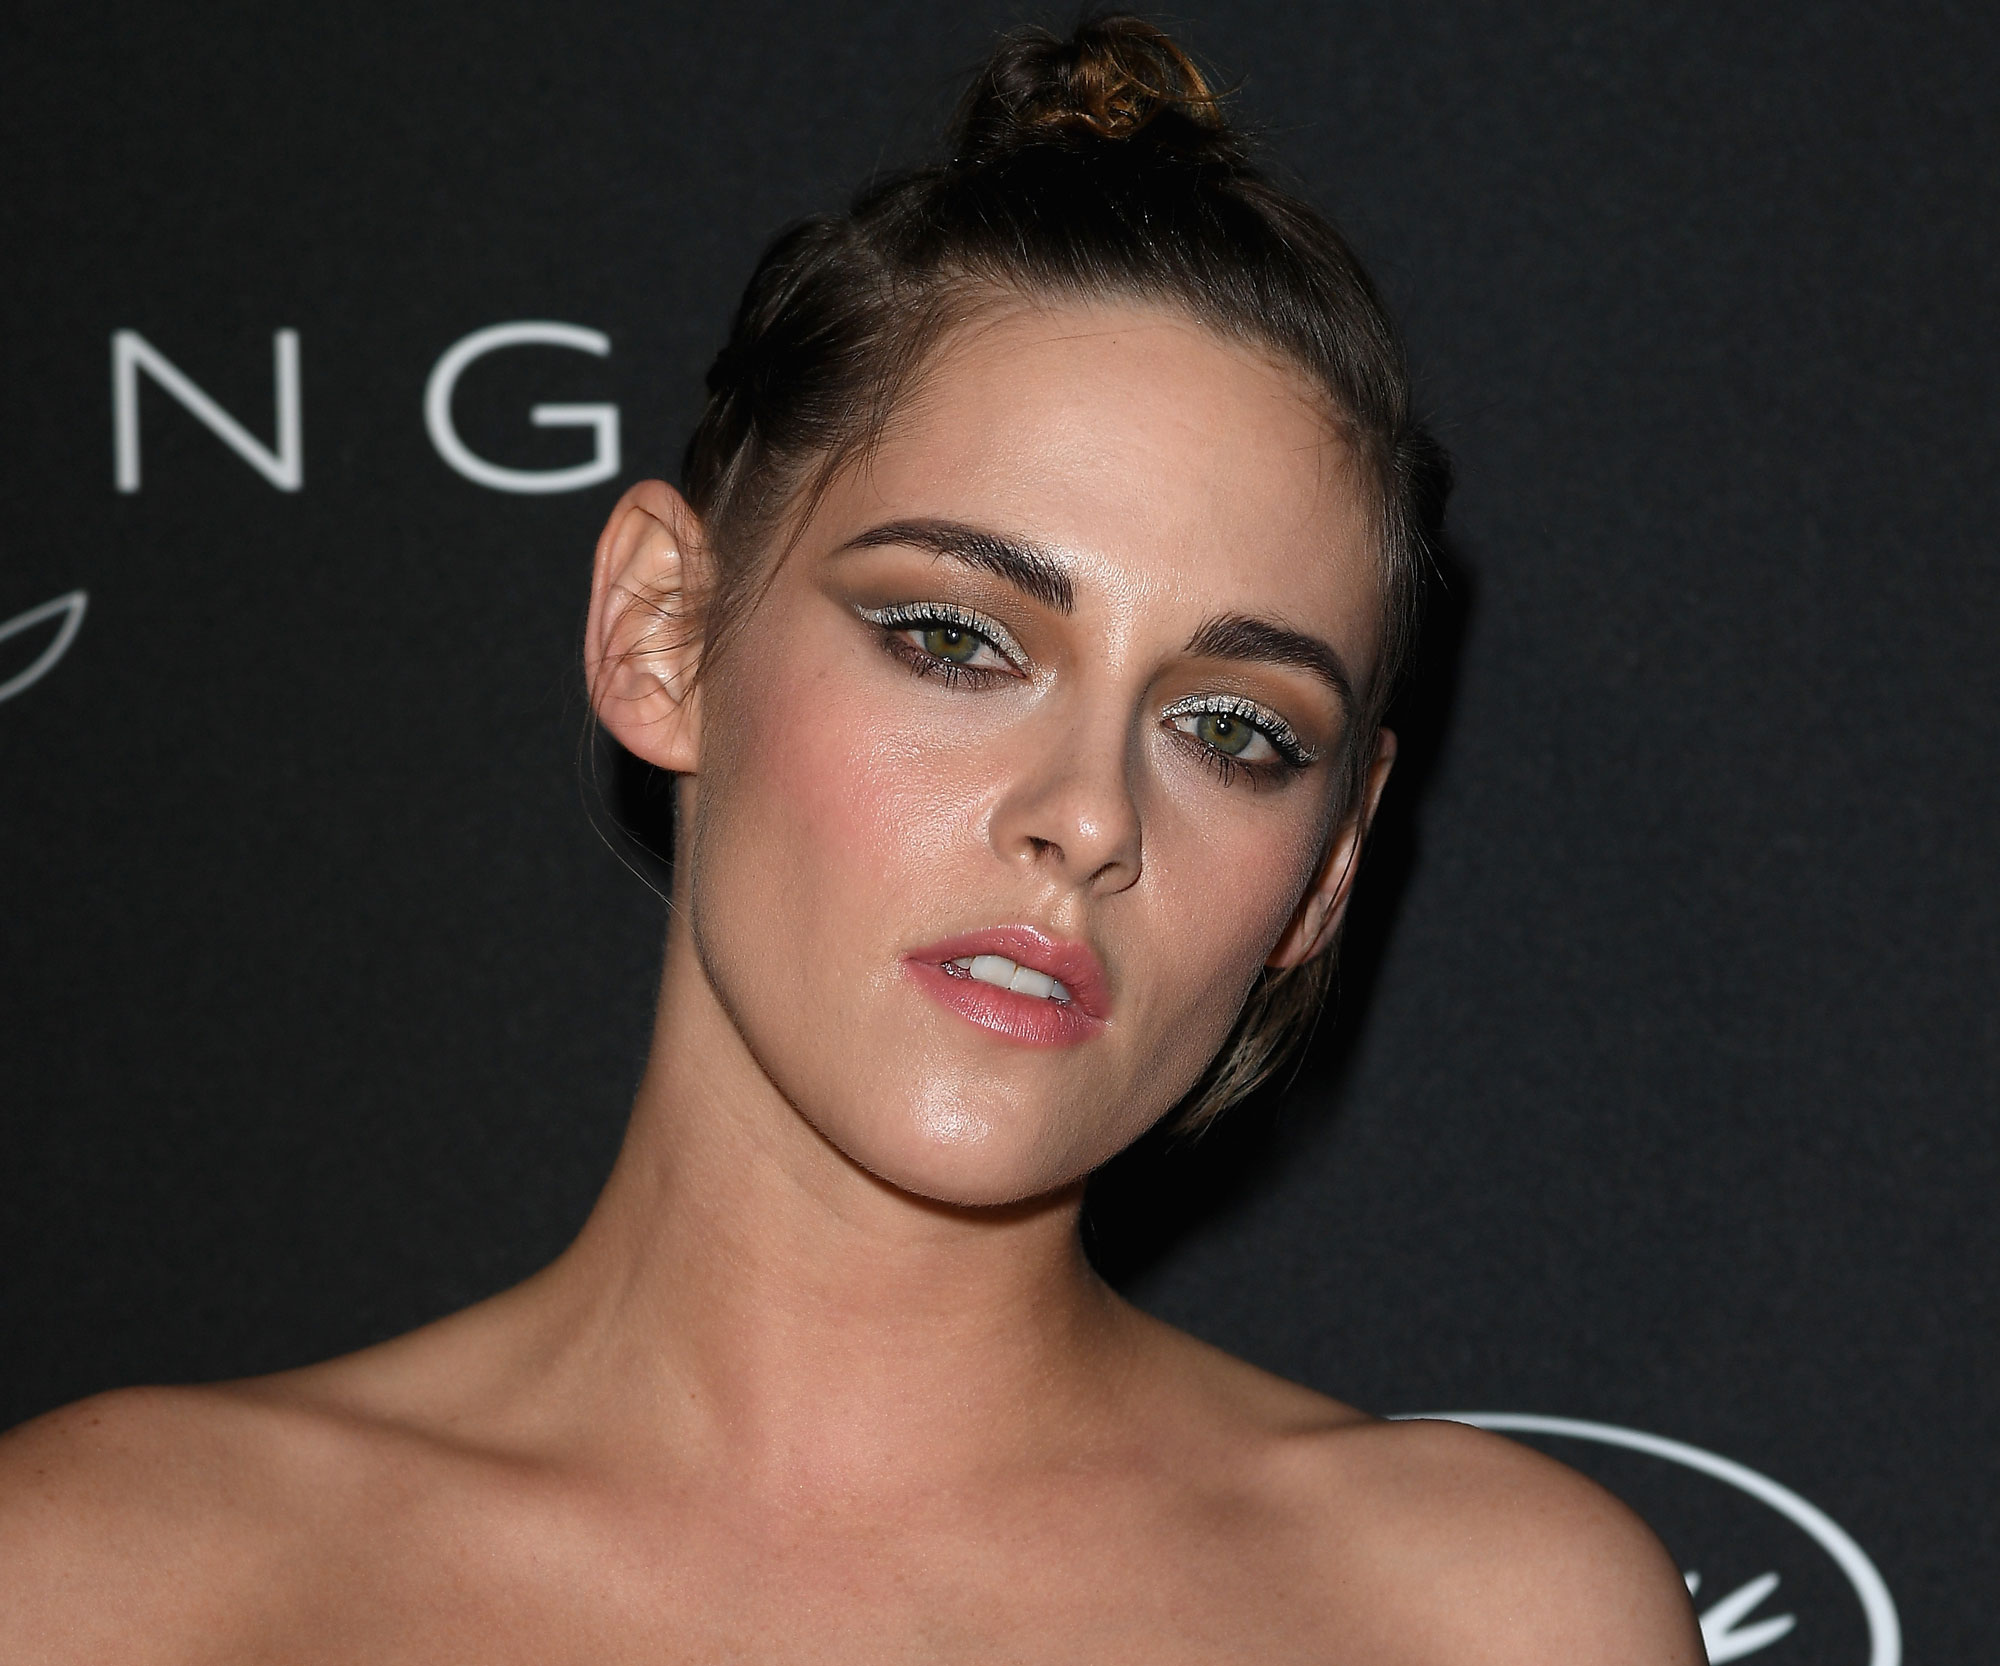 Kristen Stewart Goes Barefoot at Cannes Film Festival, Defies Heels-Only Rule